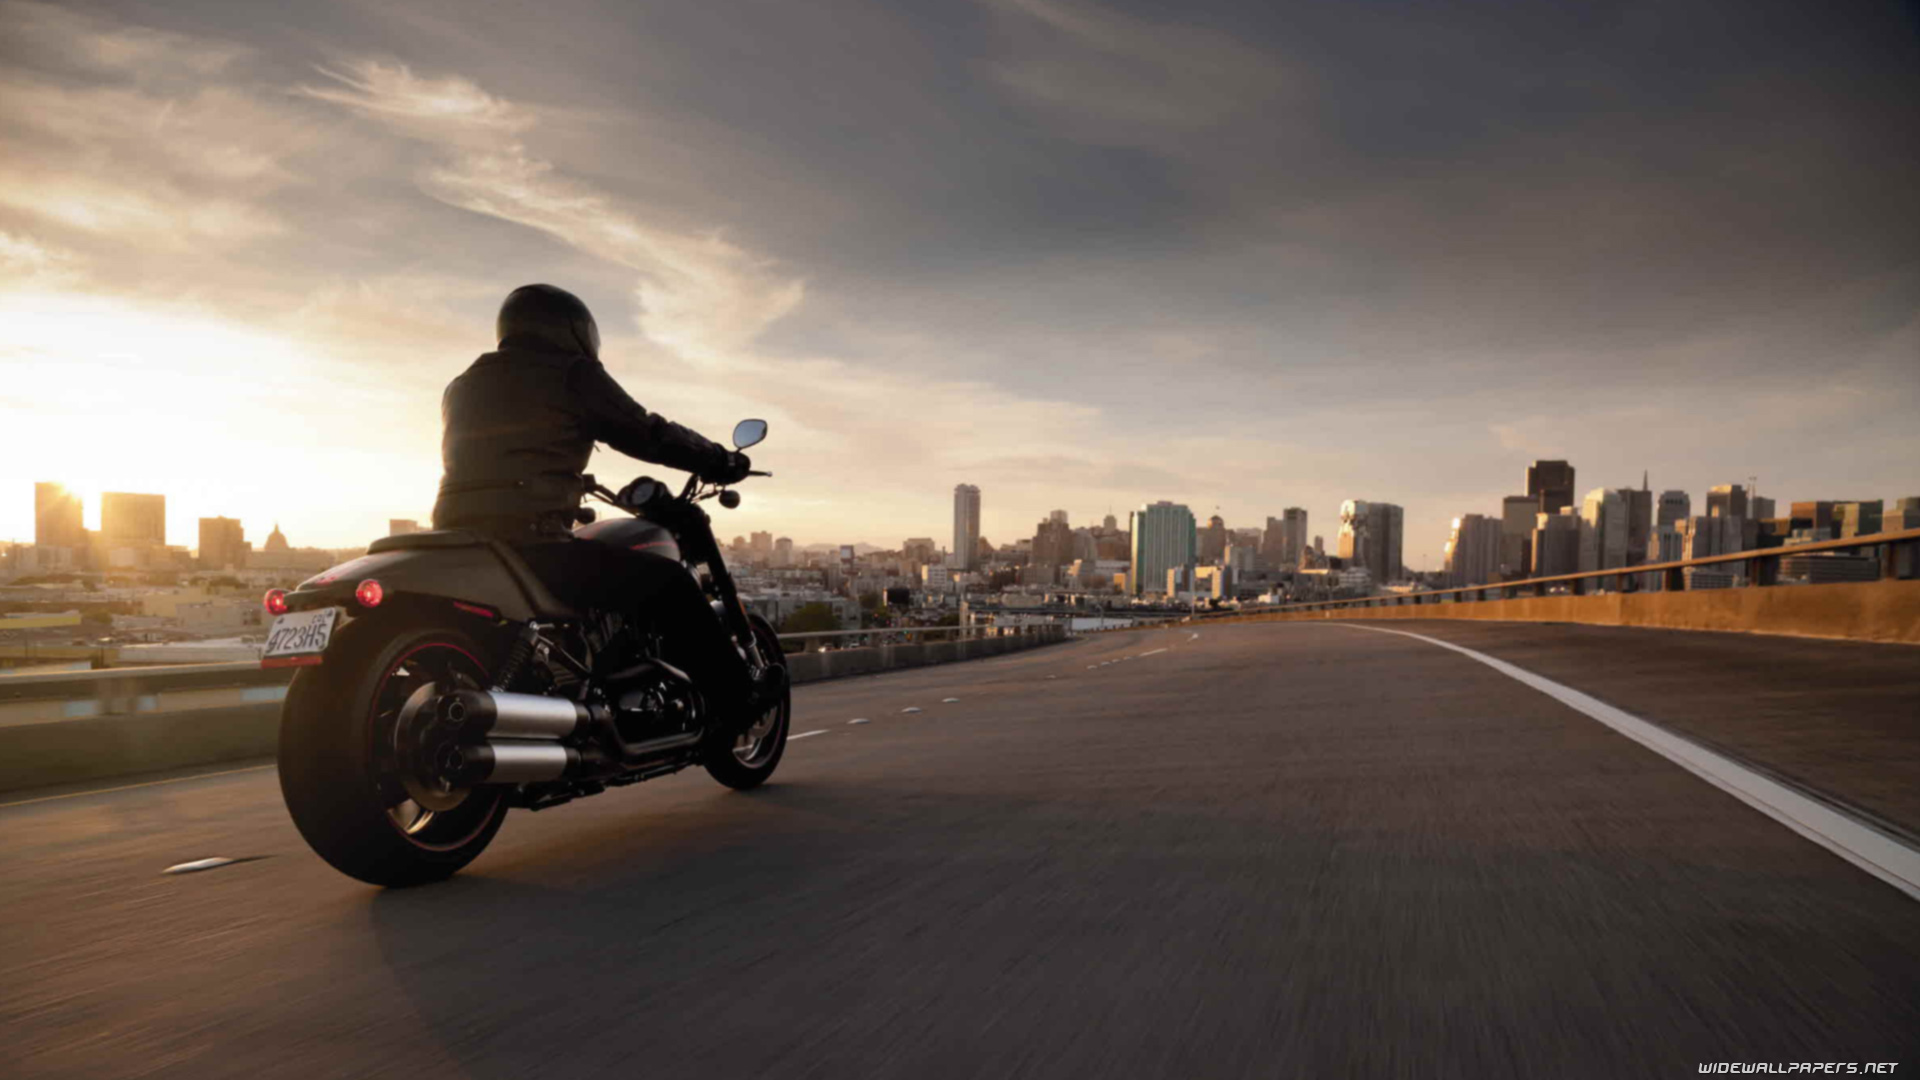 Harley-Davidson Sportster XR1200X motorcycle wallpapers